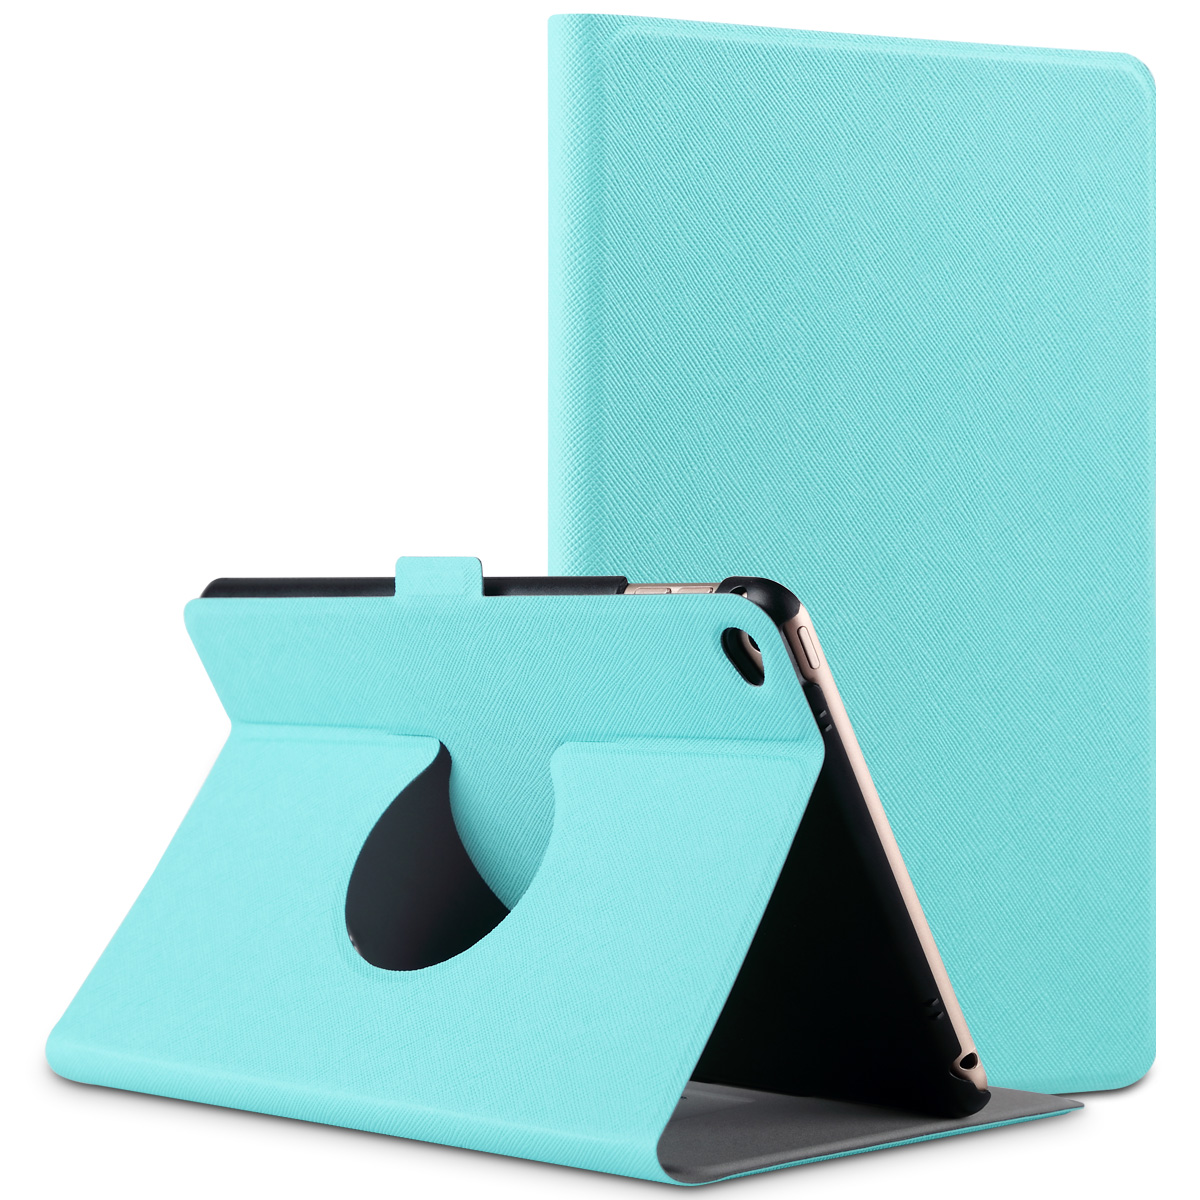 ULAK iPad Mini 4 Case 360 Degree Rotating Ultra Thin Stand Case Cover with Auto Wake / Sleep (Fits ONLY iPad Mini 4 4th Generation 2015 Release)